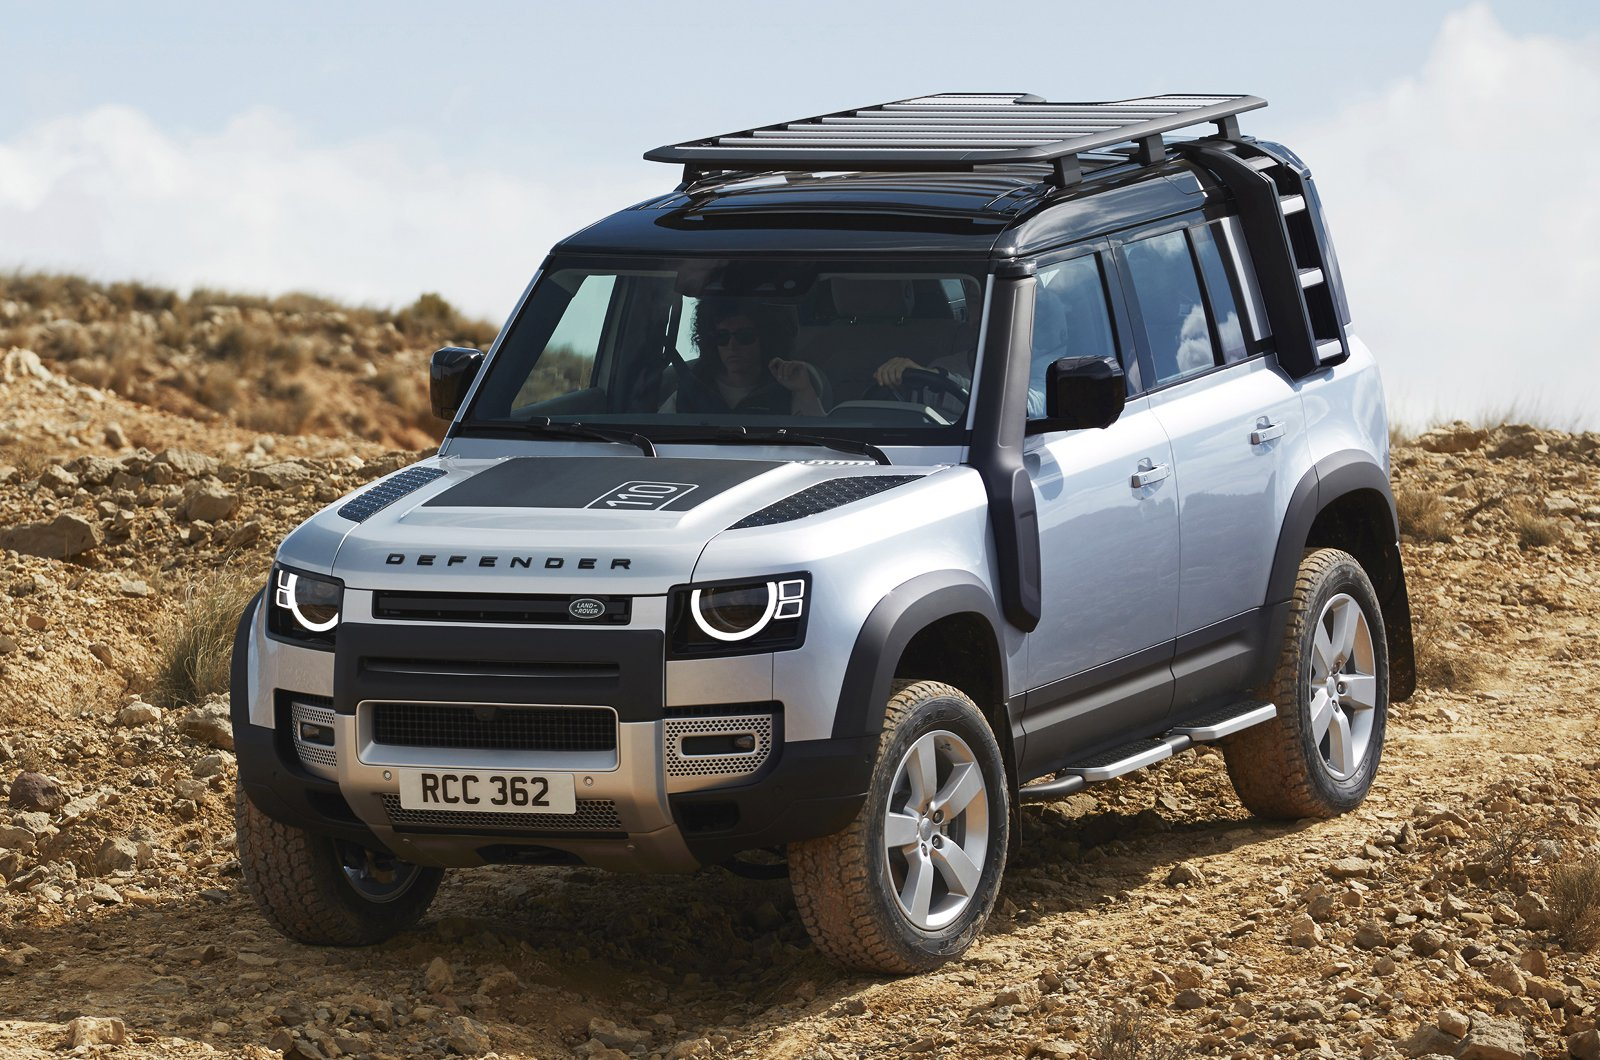 2020 Land Rover Defender 110 front